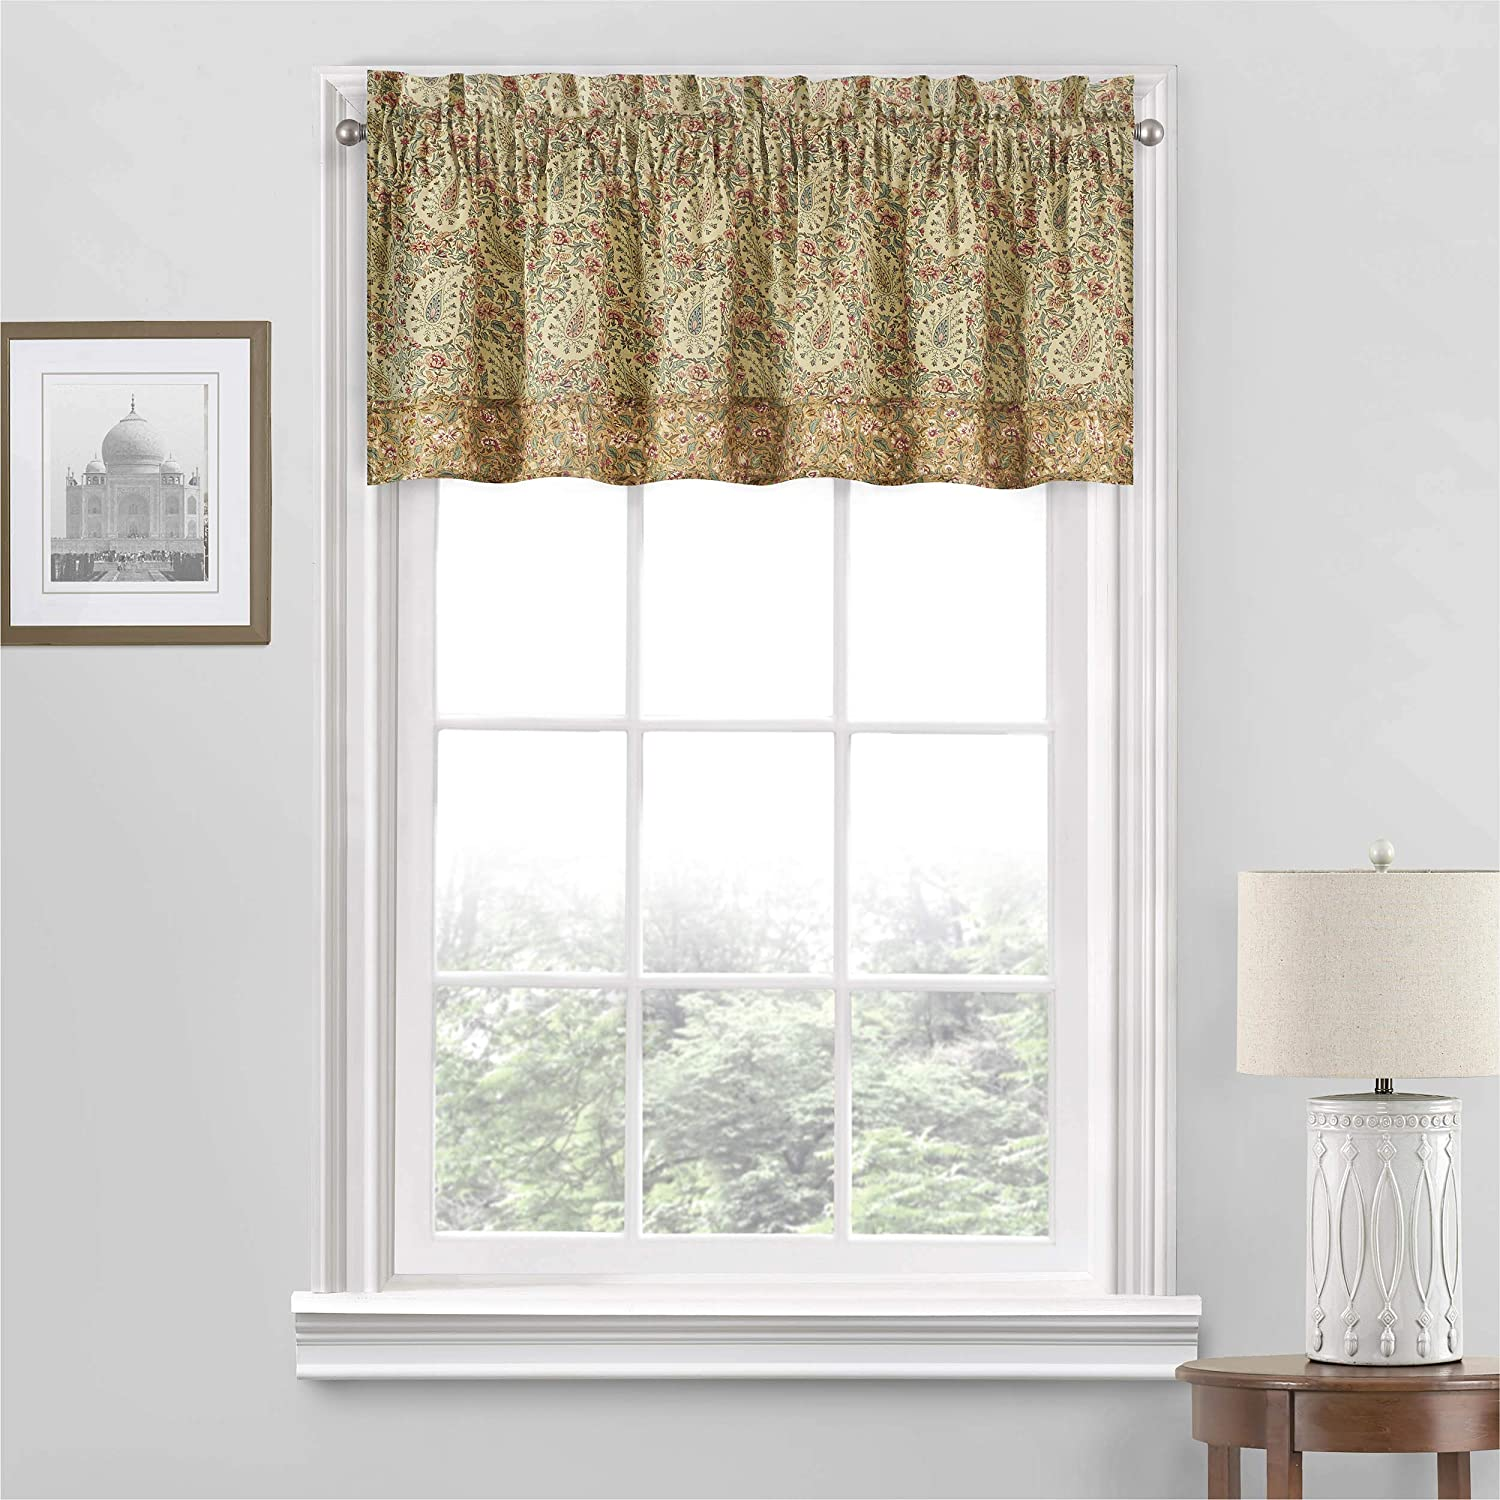 Waverly Paisley Verveine Short Valance Small Window Curtains Bathroom, Living Room and Kitchens, 52